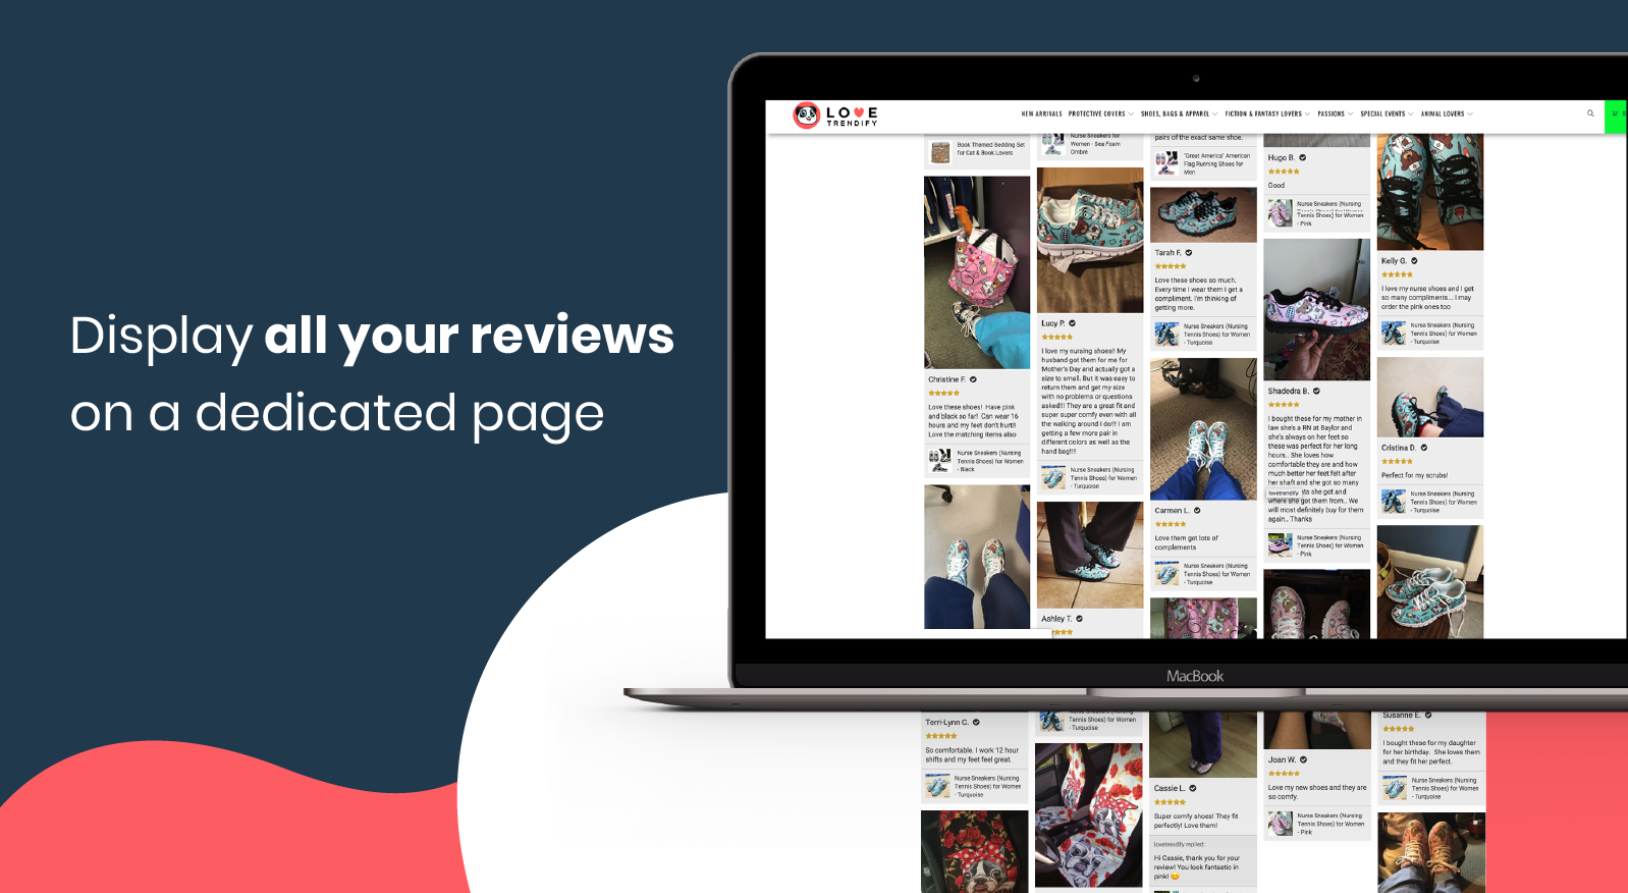 Loox ‑ Photo Reviews is one of the best review apps at Shopify